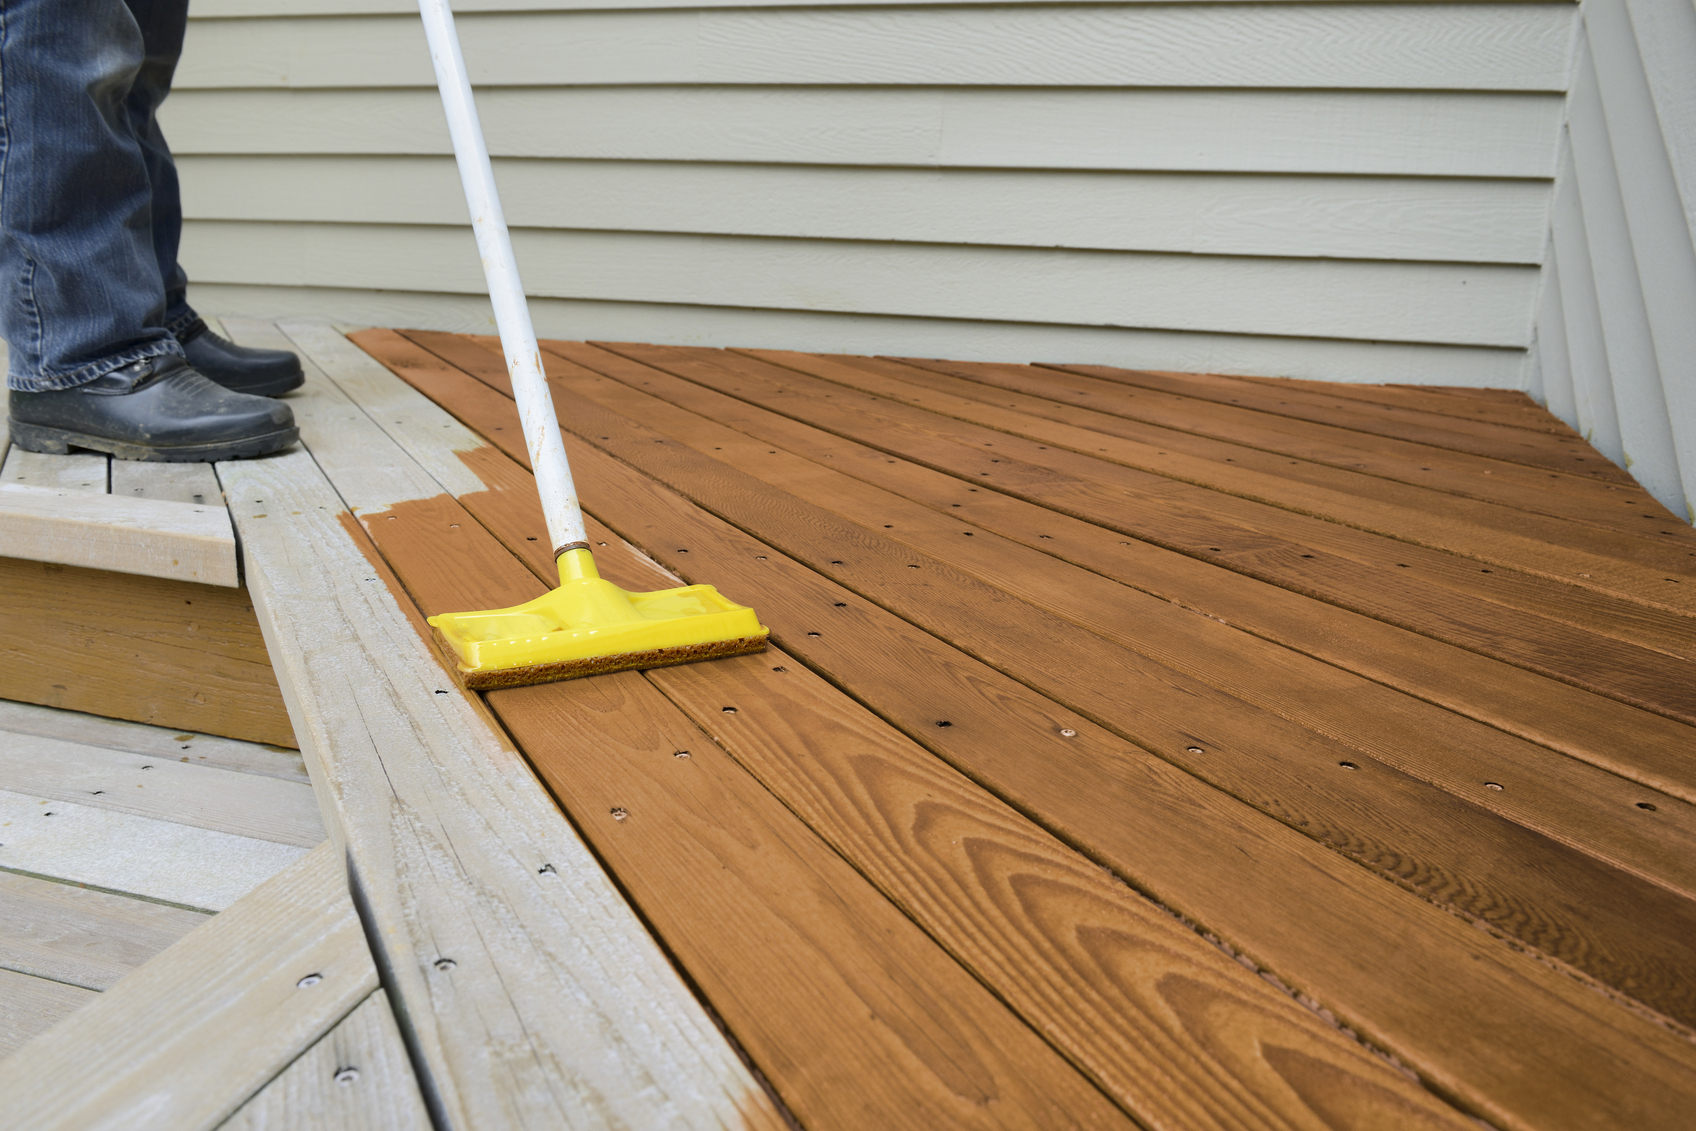 10 Best Rated Deck Stains Lovetoknow regarding size 1696 X 1131